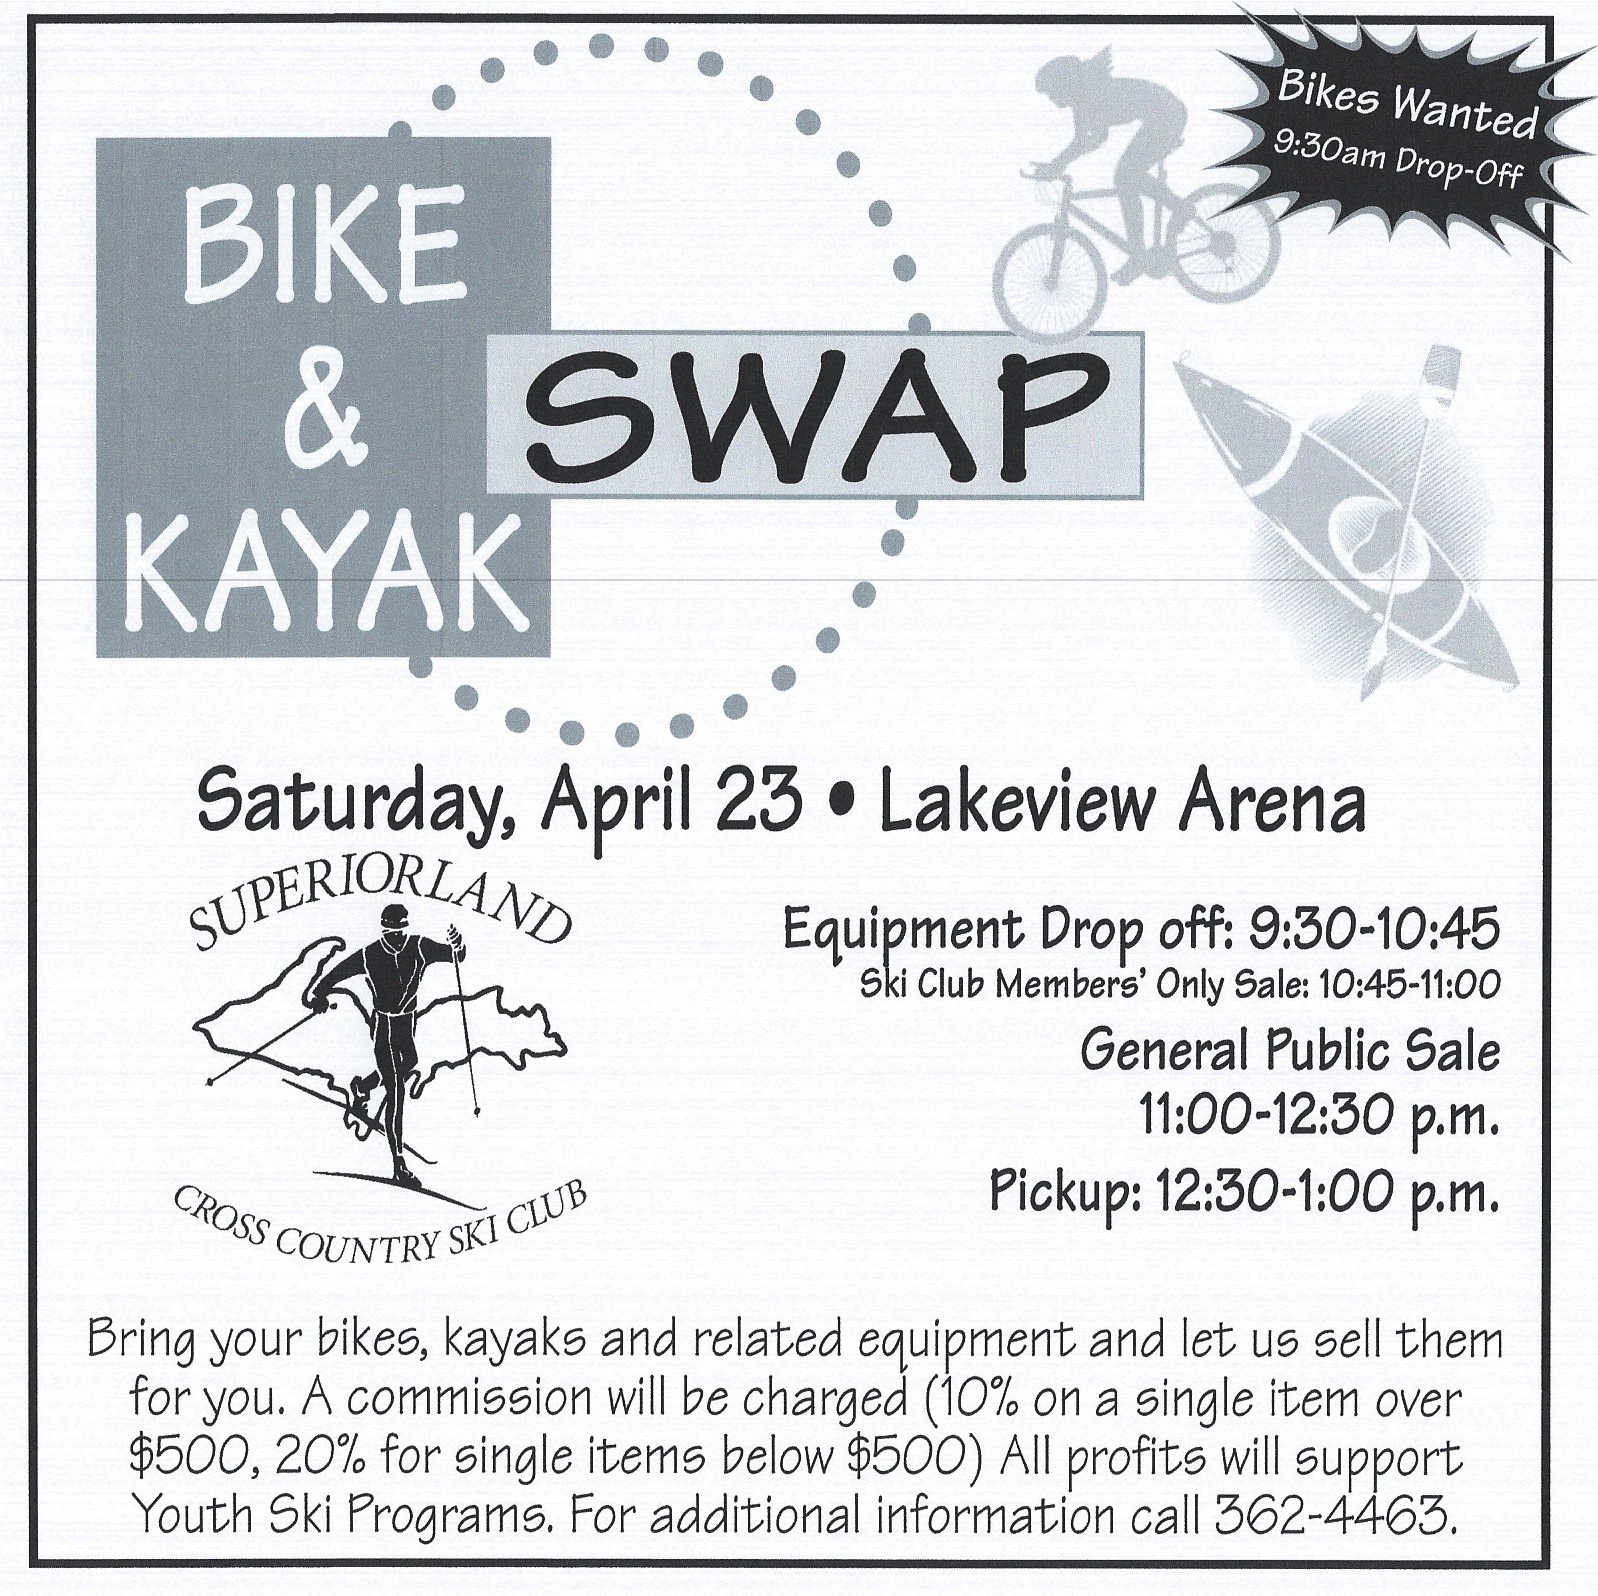 ad for 2016 bike swap